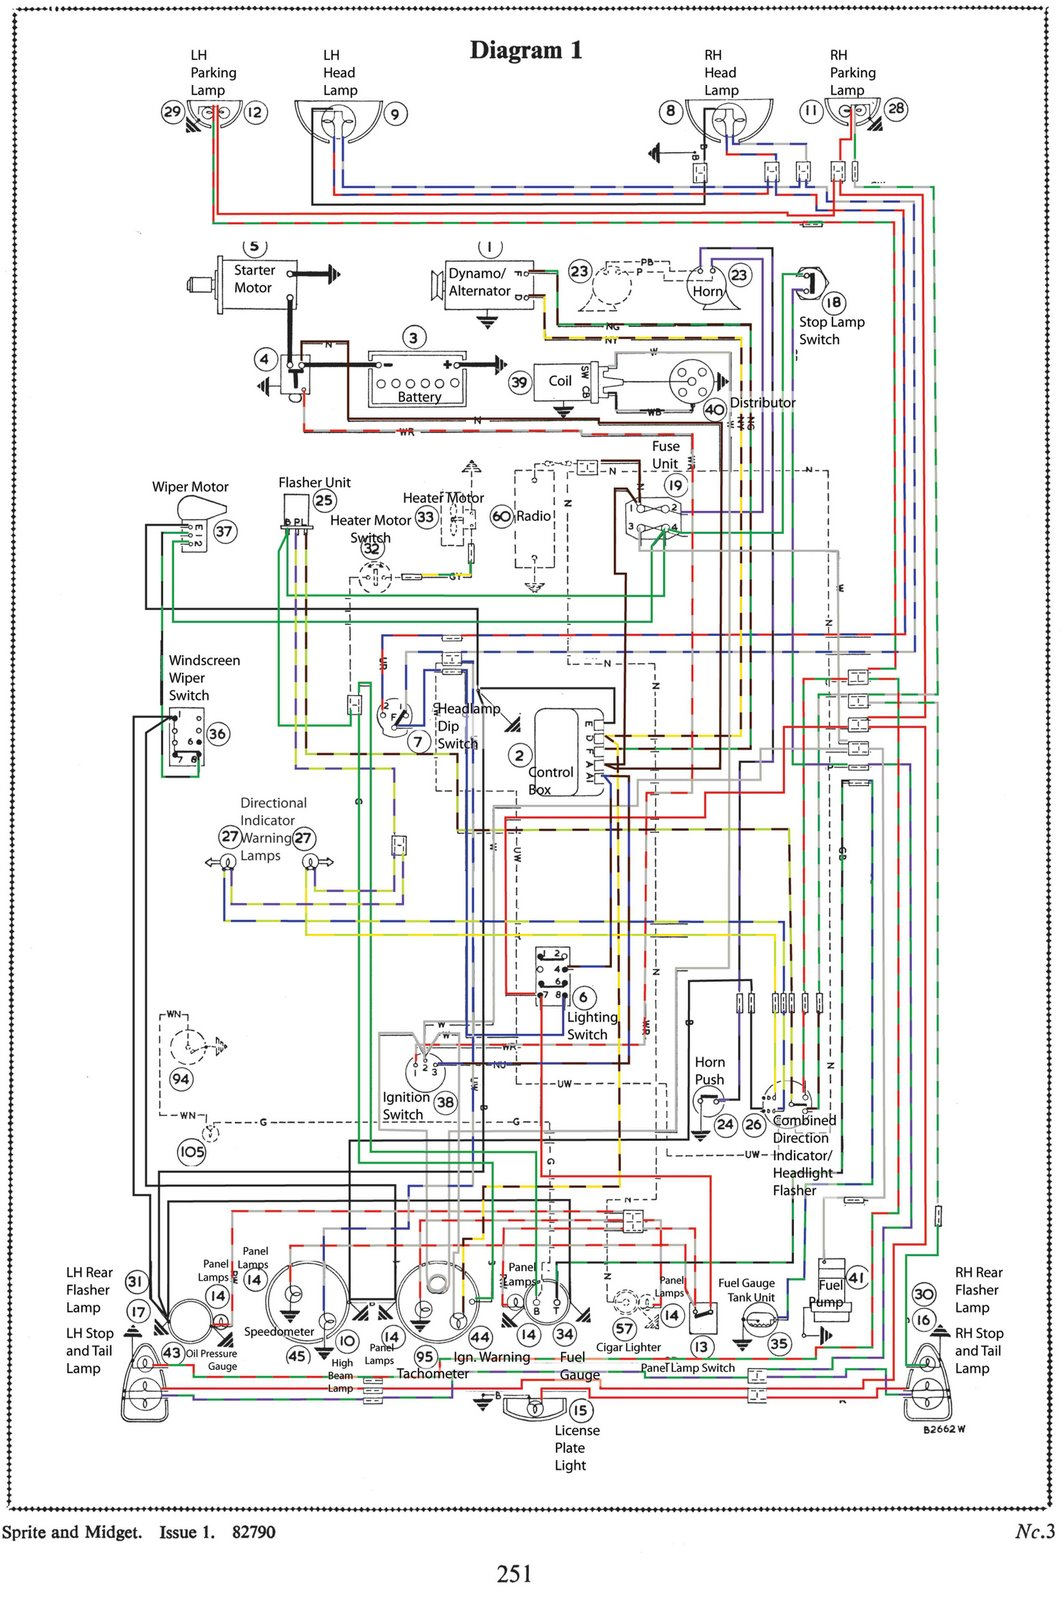 wiring diagram for mg midget wiring diagram data schema Mga Alternator Conversion diagram 77 mg midget wiring diagram mg file jq79932 mitsubishi starion wiring diagram 79 mg midget